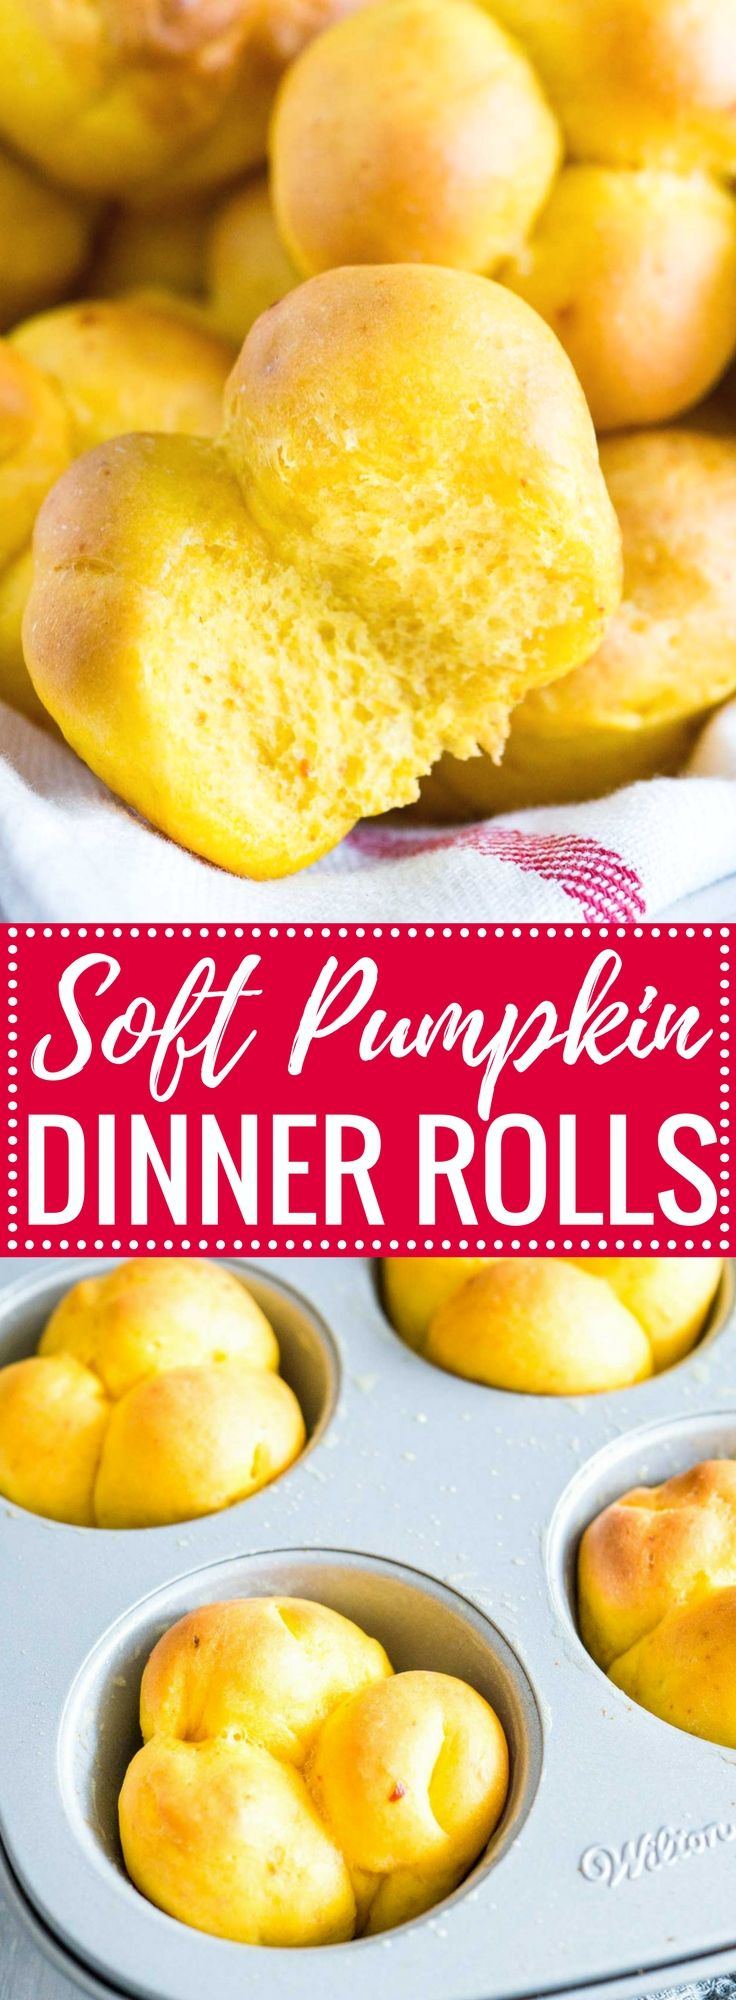 These Cheesy Pumpkin Dinner Rolls are so soft and fluffy! My go-to fall roll recipe is special enough for Thanksgiving dinner but easy to make, freezer-friendly, and so delicious with just the right amount of pumpkin flavor.